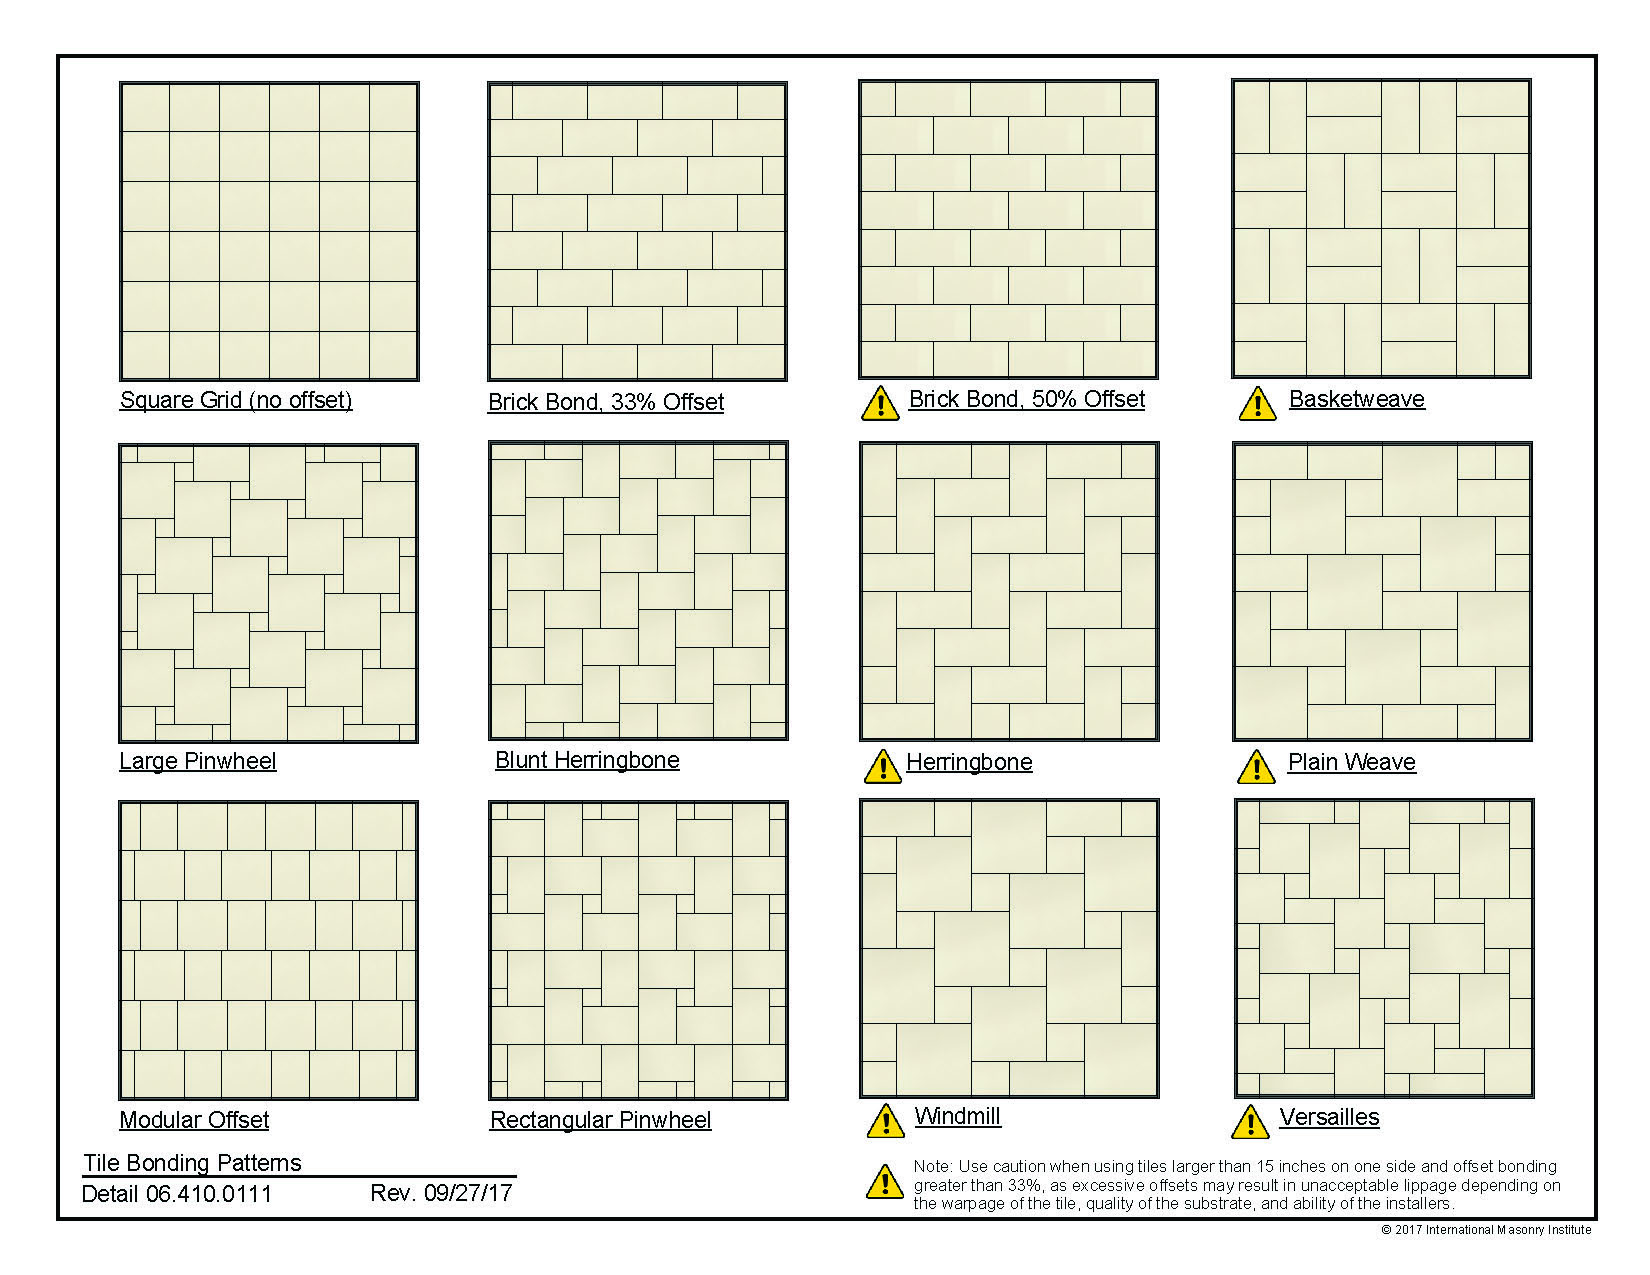 06 410 0111 The Bonding Patterns International Masonry